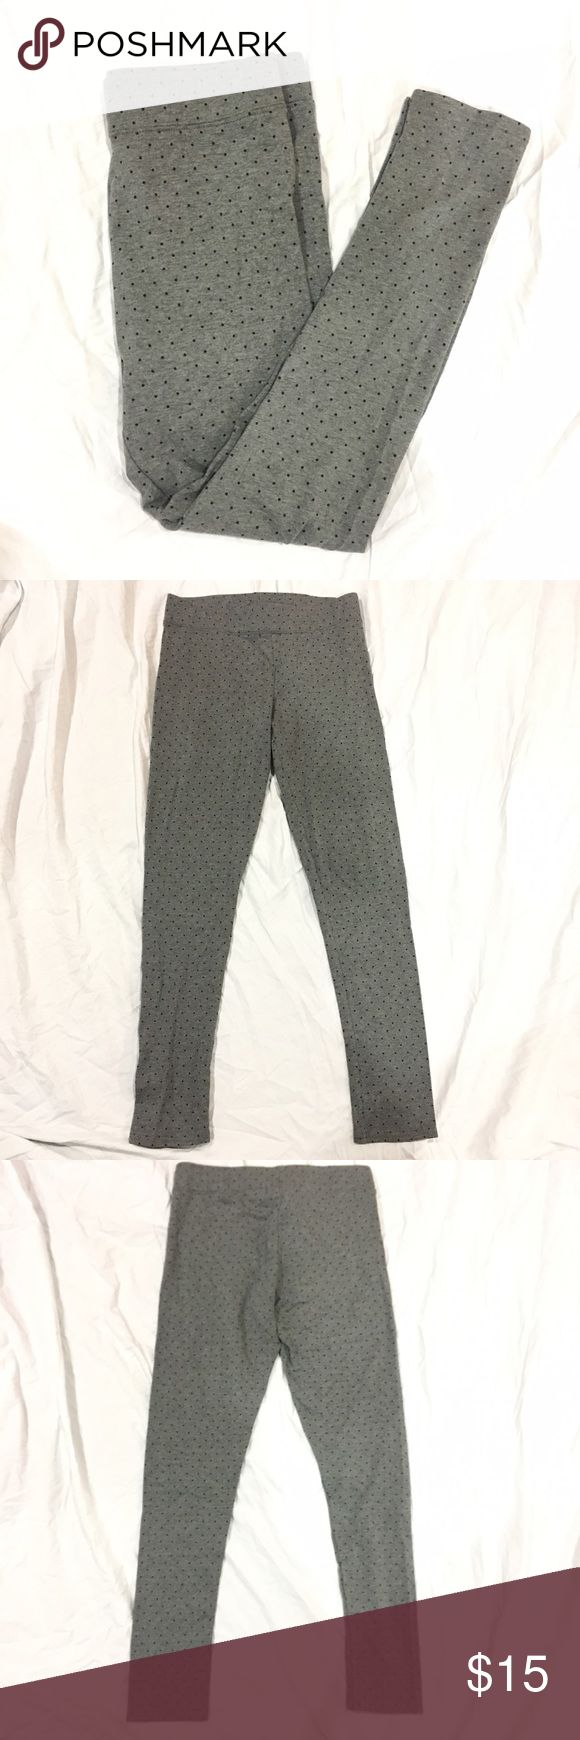 "American Eagle polka dot leggings Grey leggings with small black polka dots. Length: 35"", inseam: 27"", waist: 14"" across. In great condition. Feel free to make me a reasonable offer 💕 American Eagle Outfitters Pants Leggings"